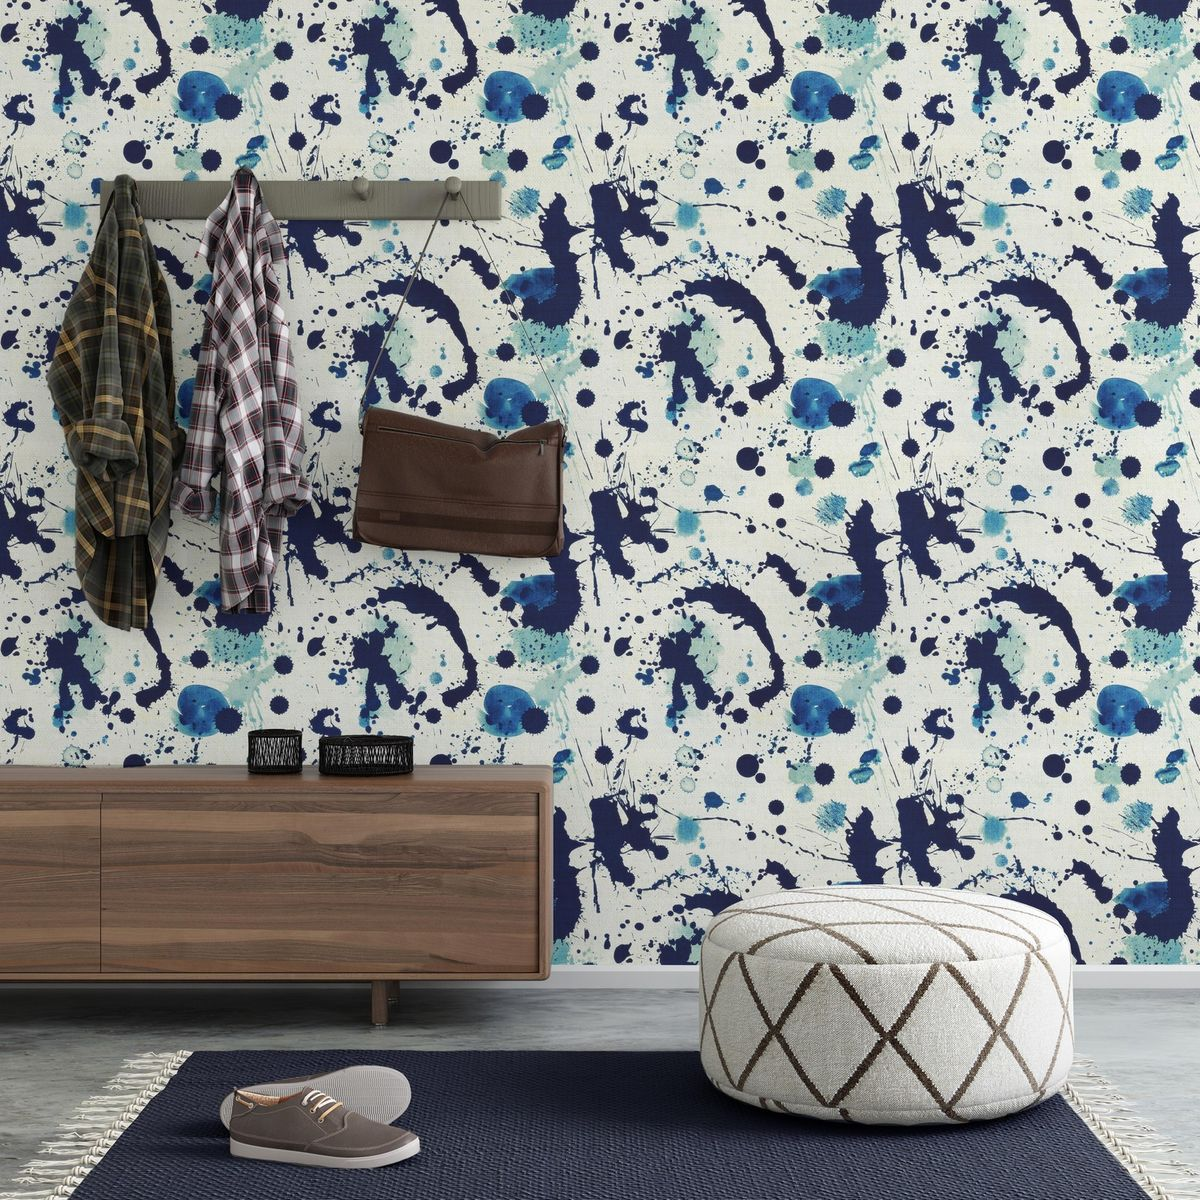 Mind The Gap 'Splatter' Wallpaper - product images  of